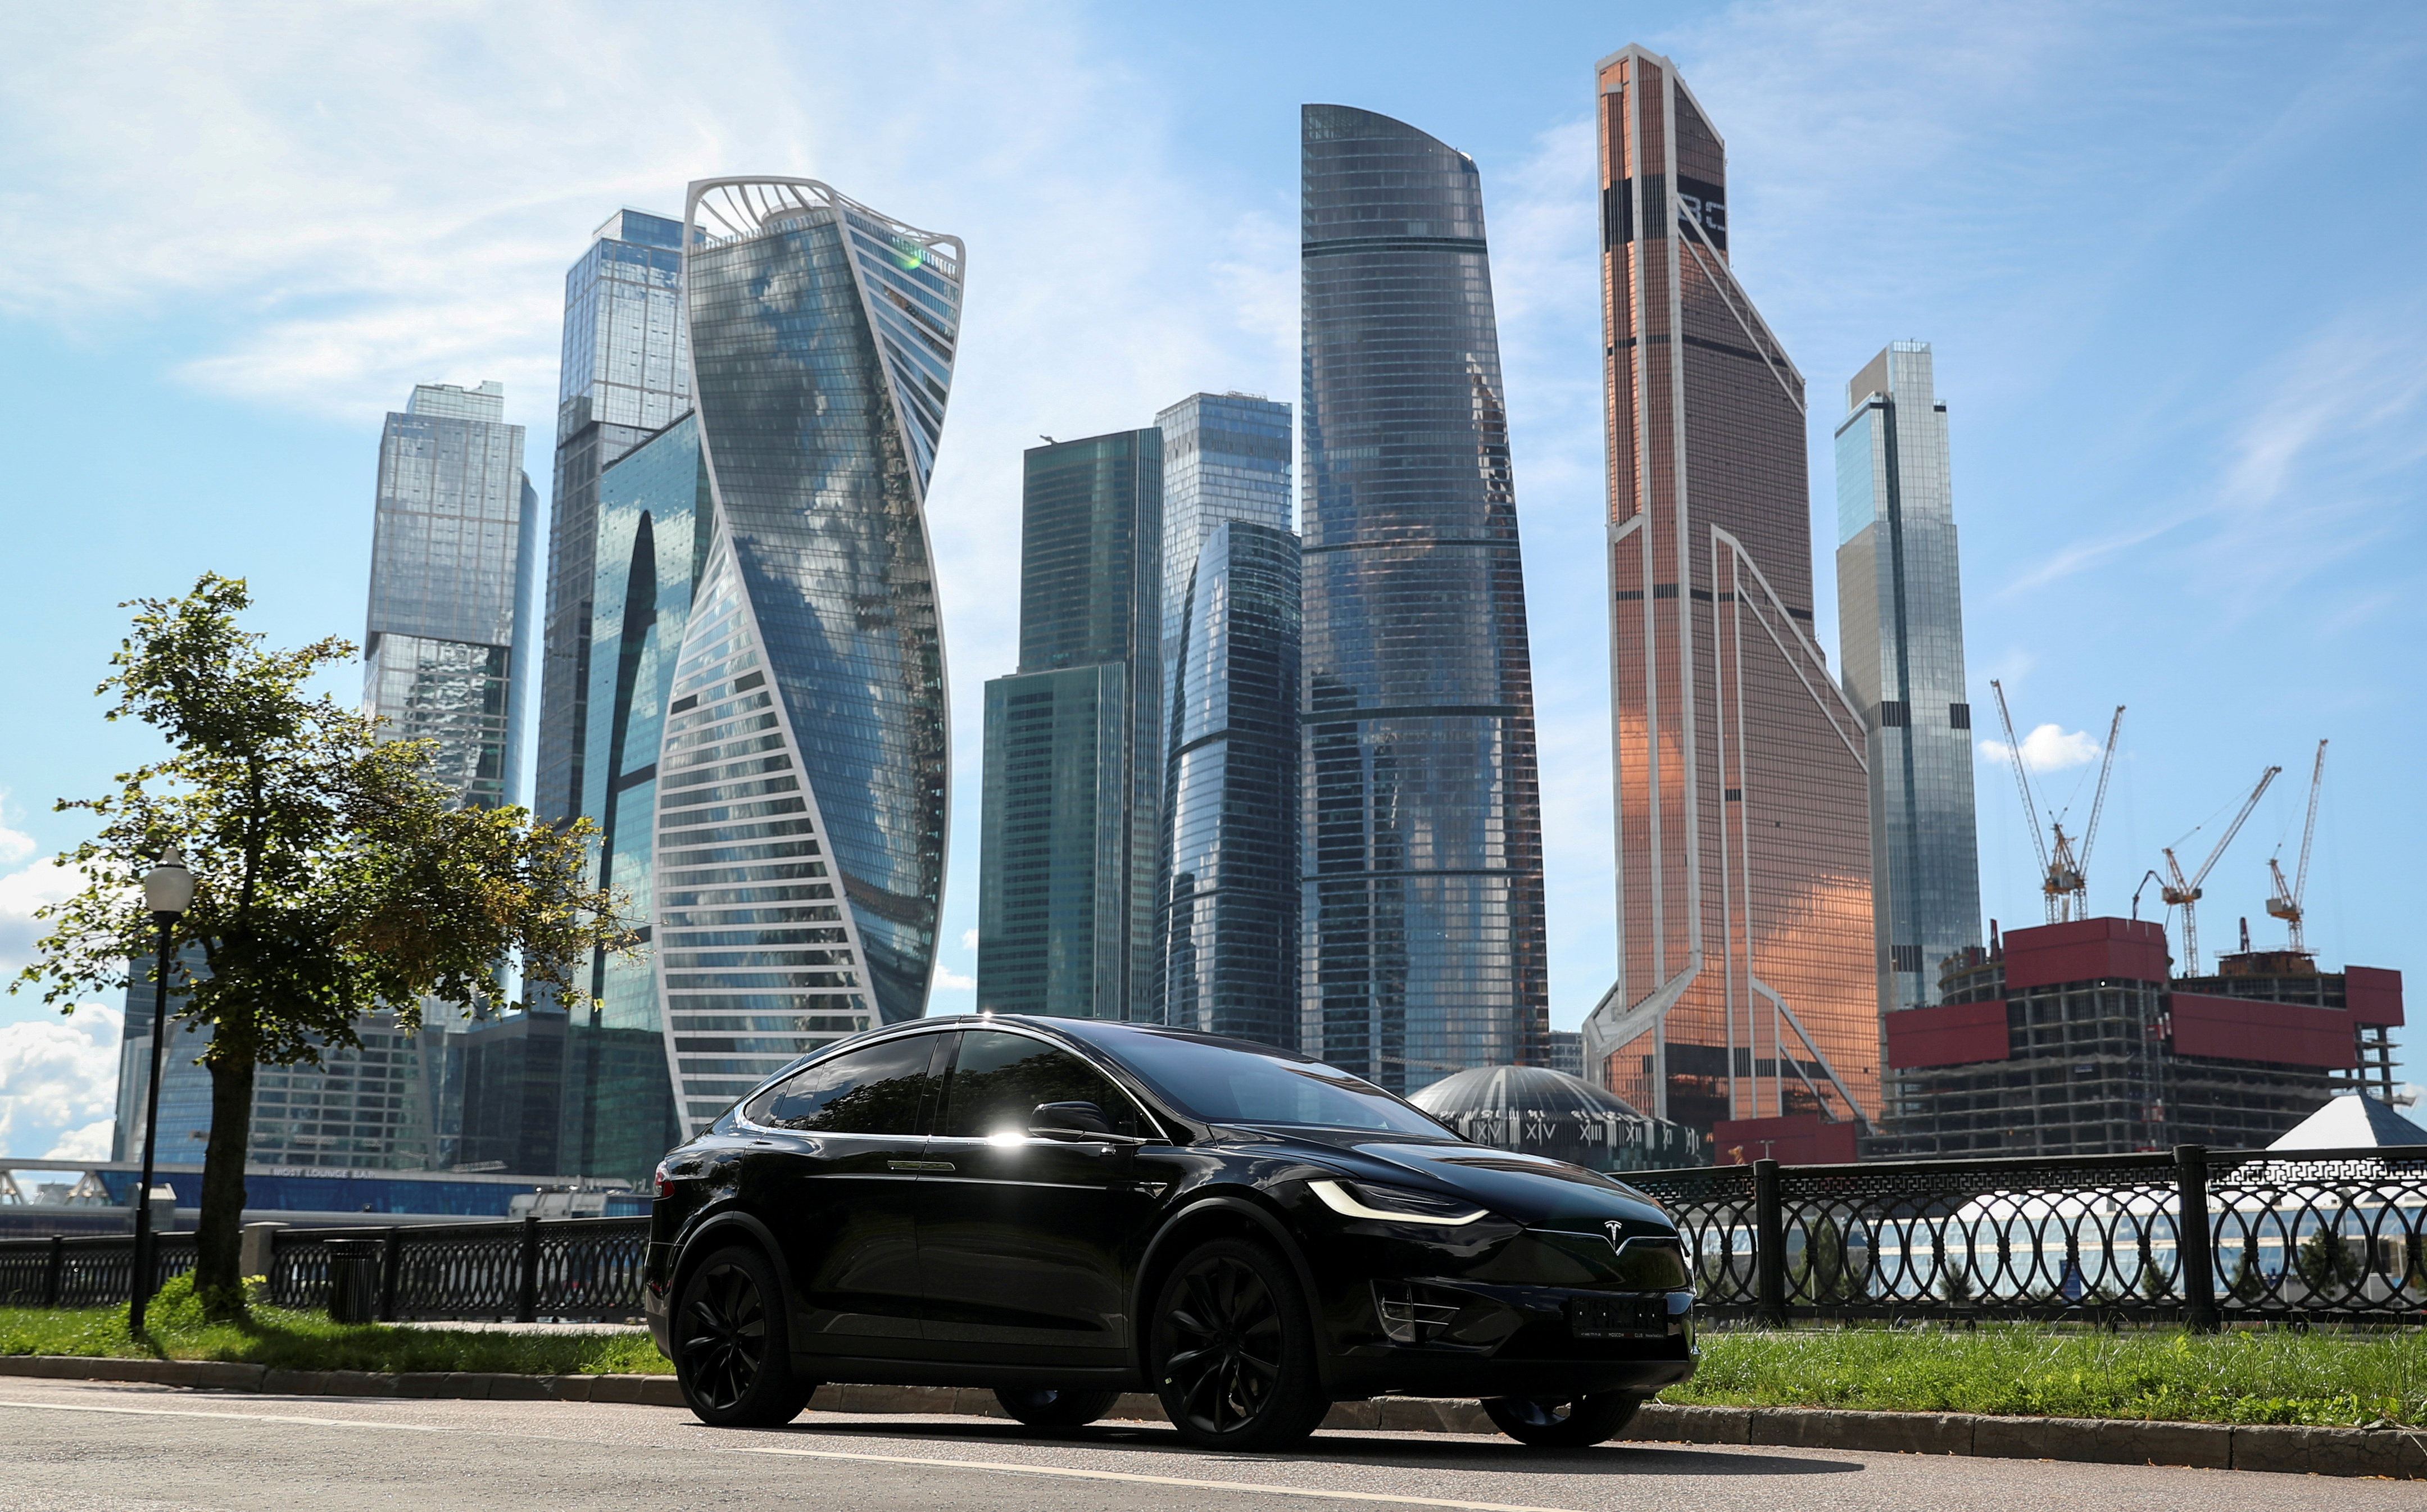 Moscow, capital of oil-rich Russia, targets electric car growth   Reuters